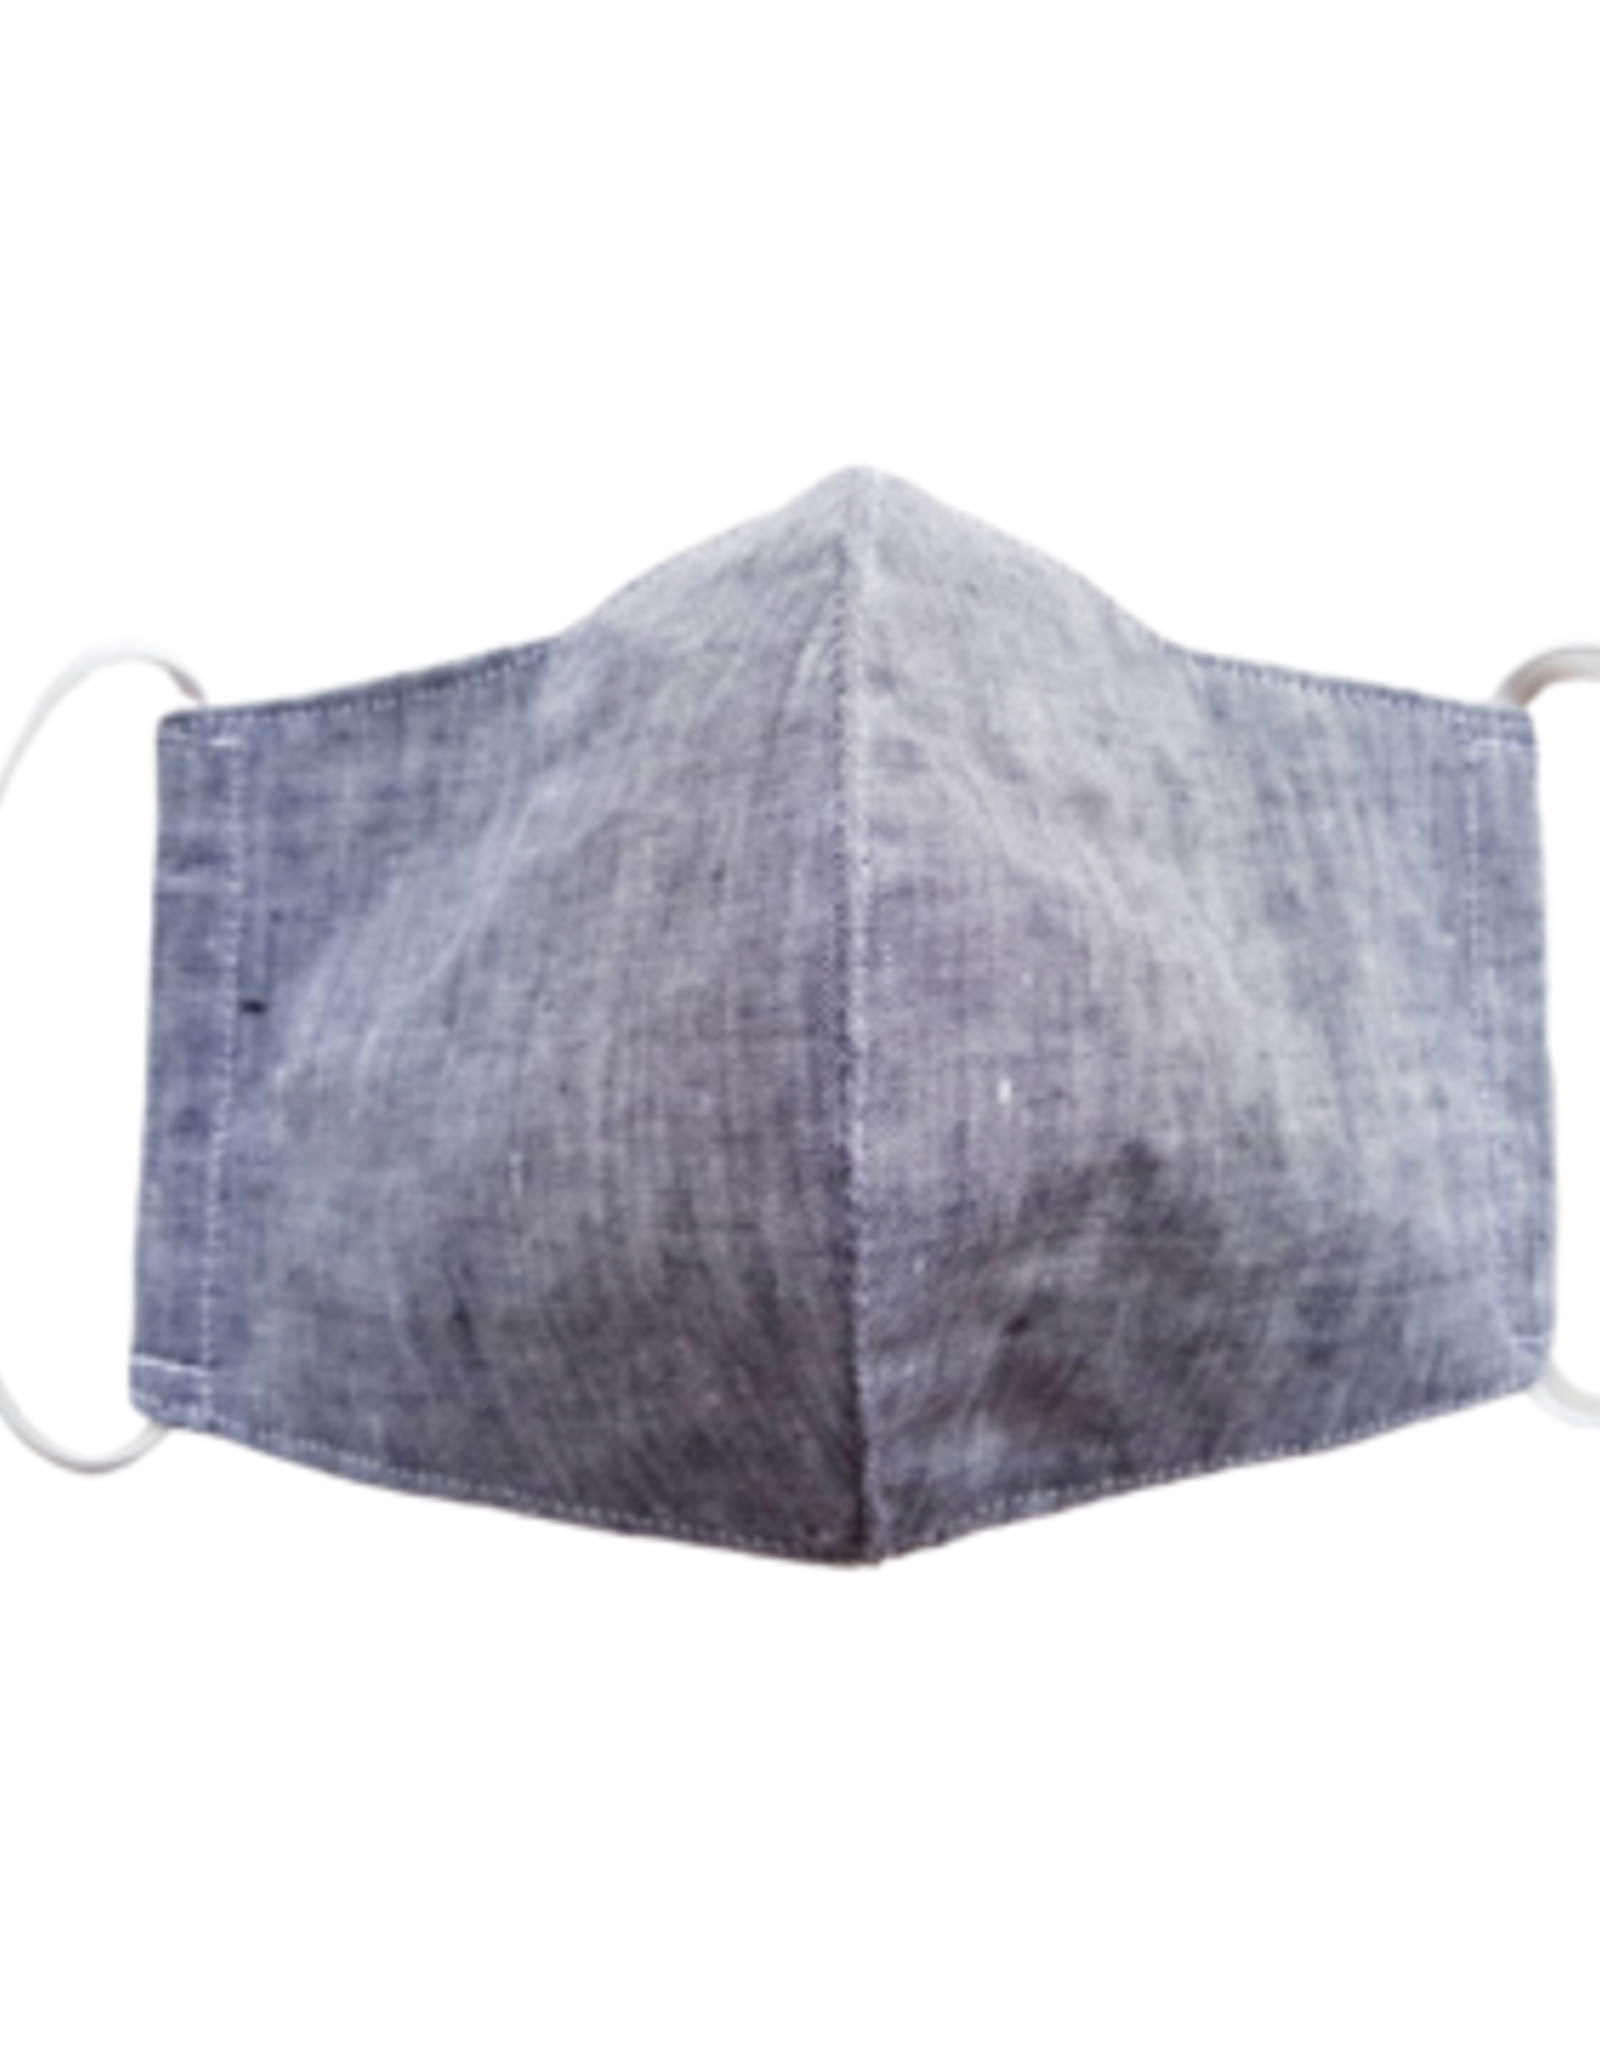 Linen Mask w/ Filter Pocket,  Gray